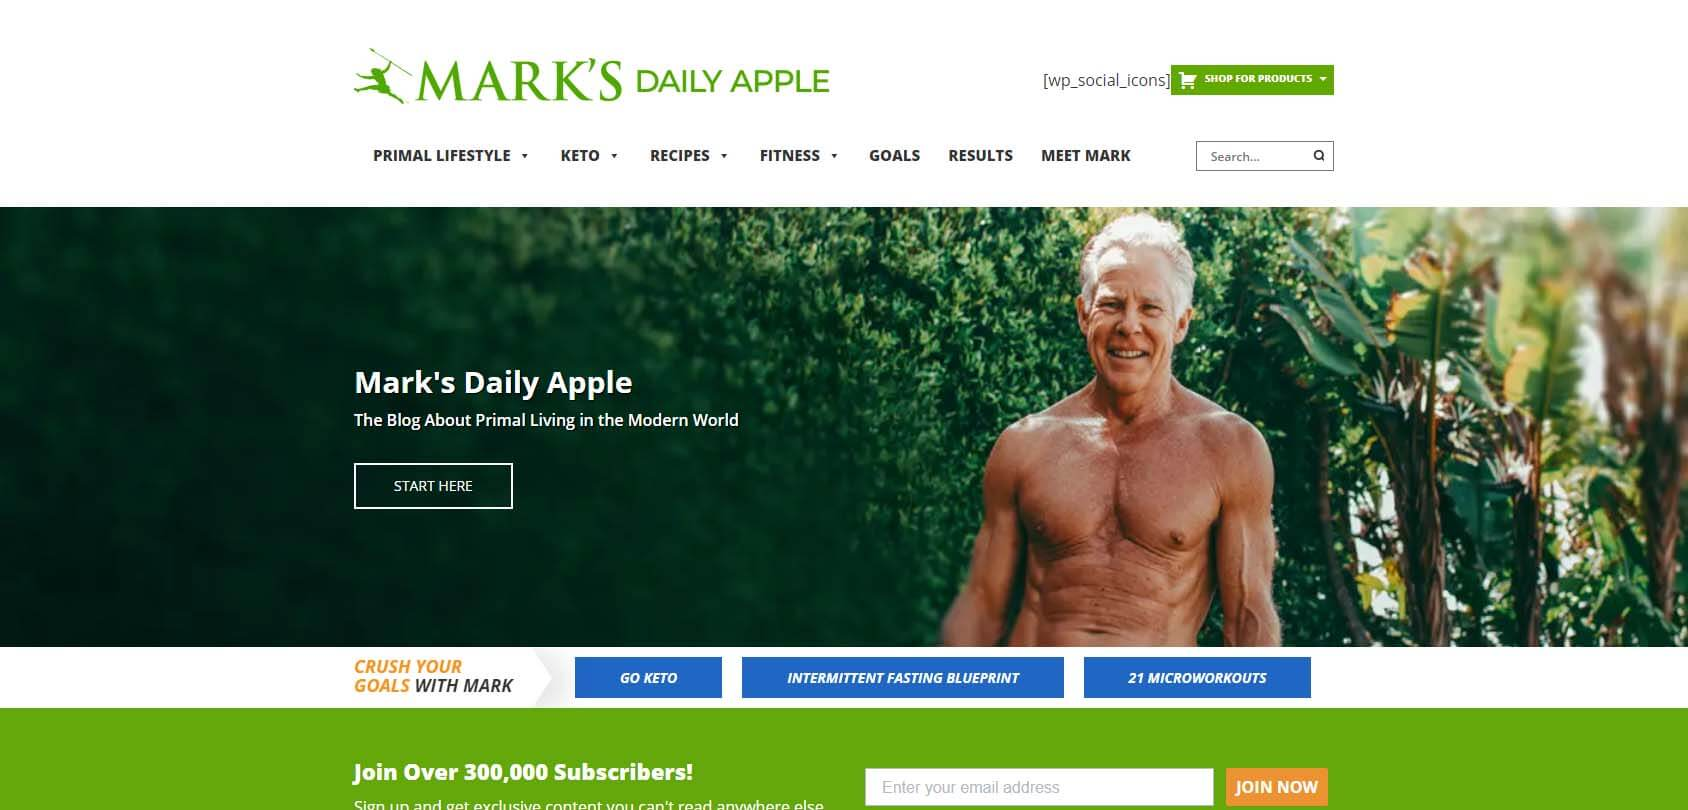 Mark's Daily Apple Homepage